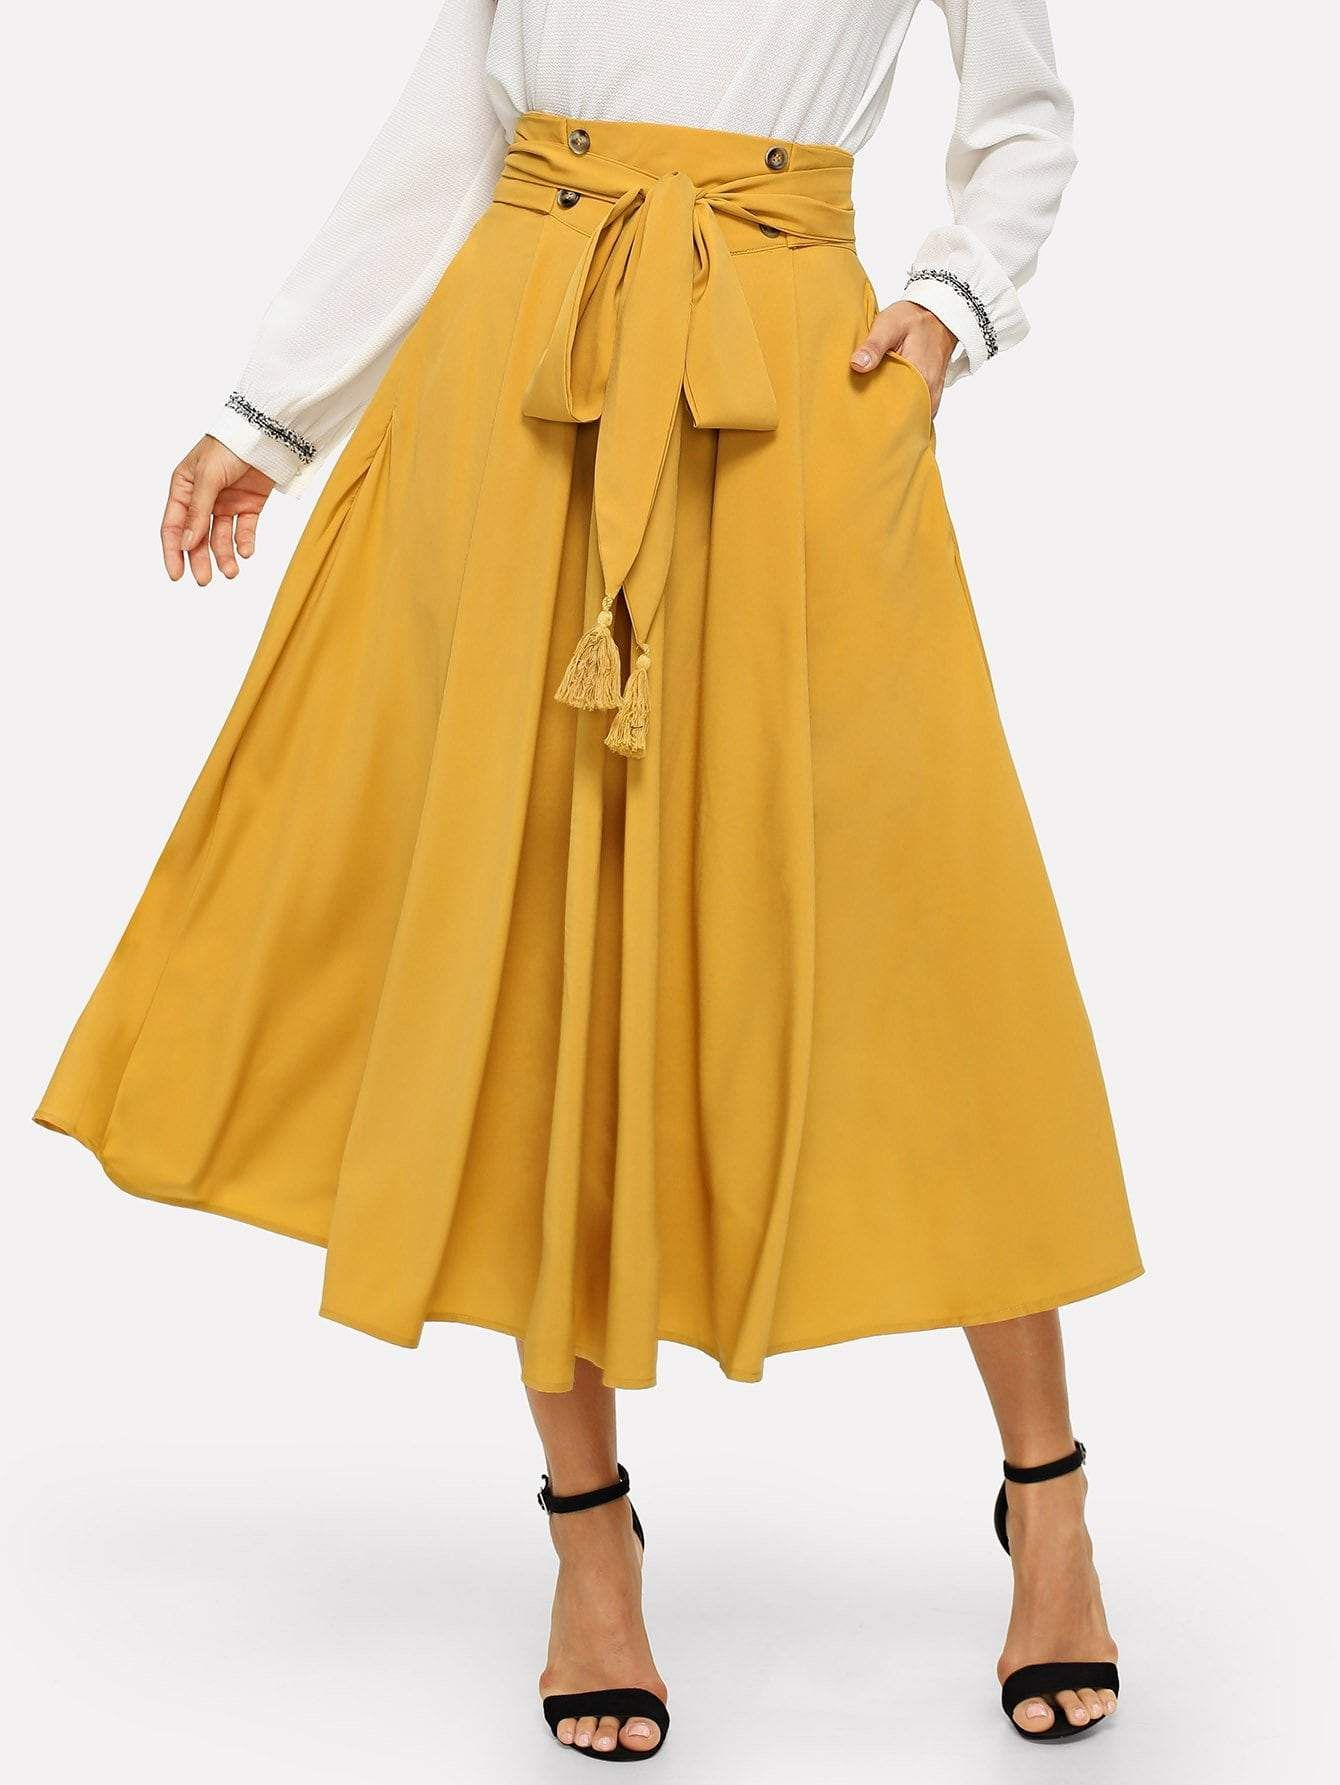 f19583129 Tassel Bow Tie Waist Pocket Side Pleated Skirt in 2019 | Products ...